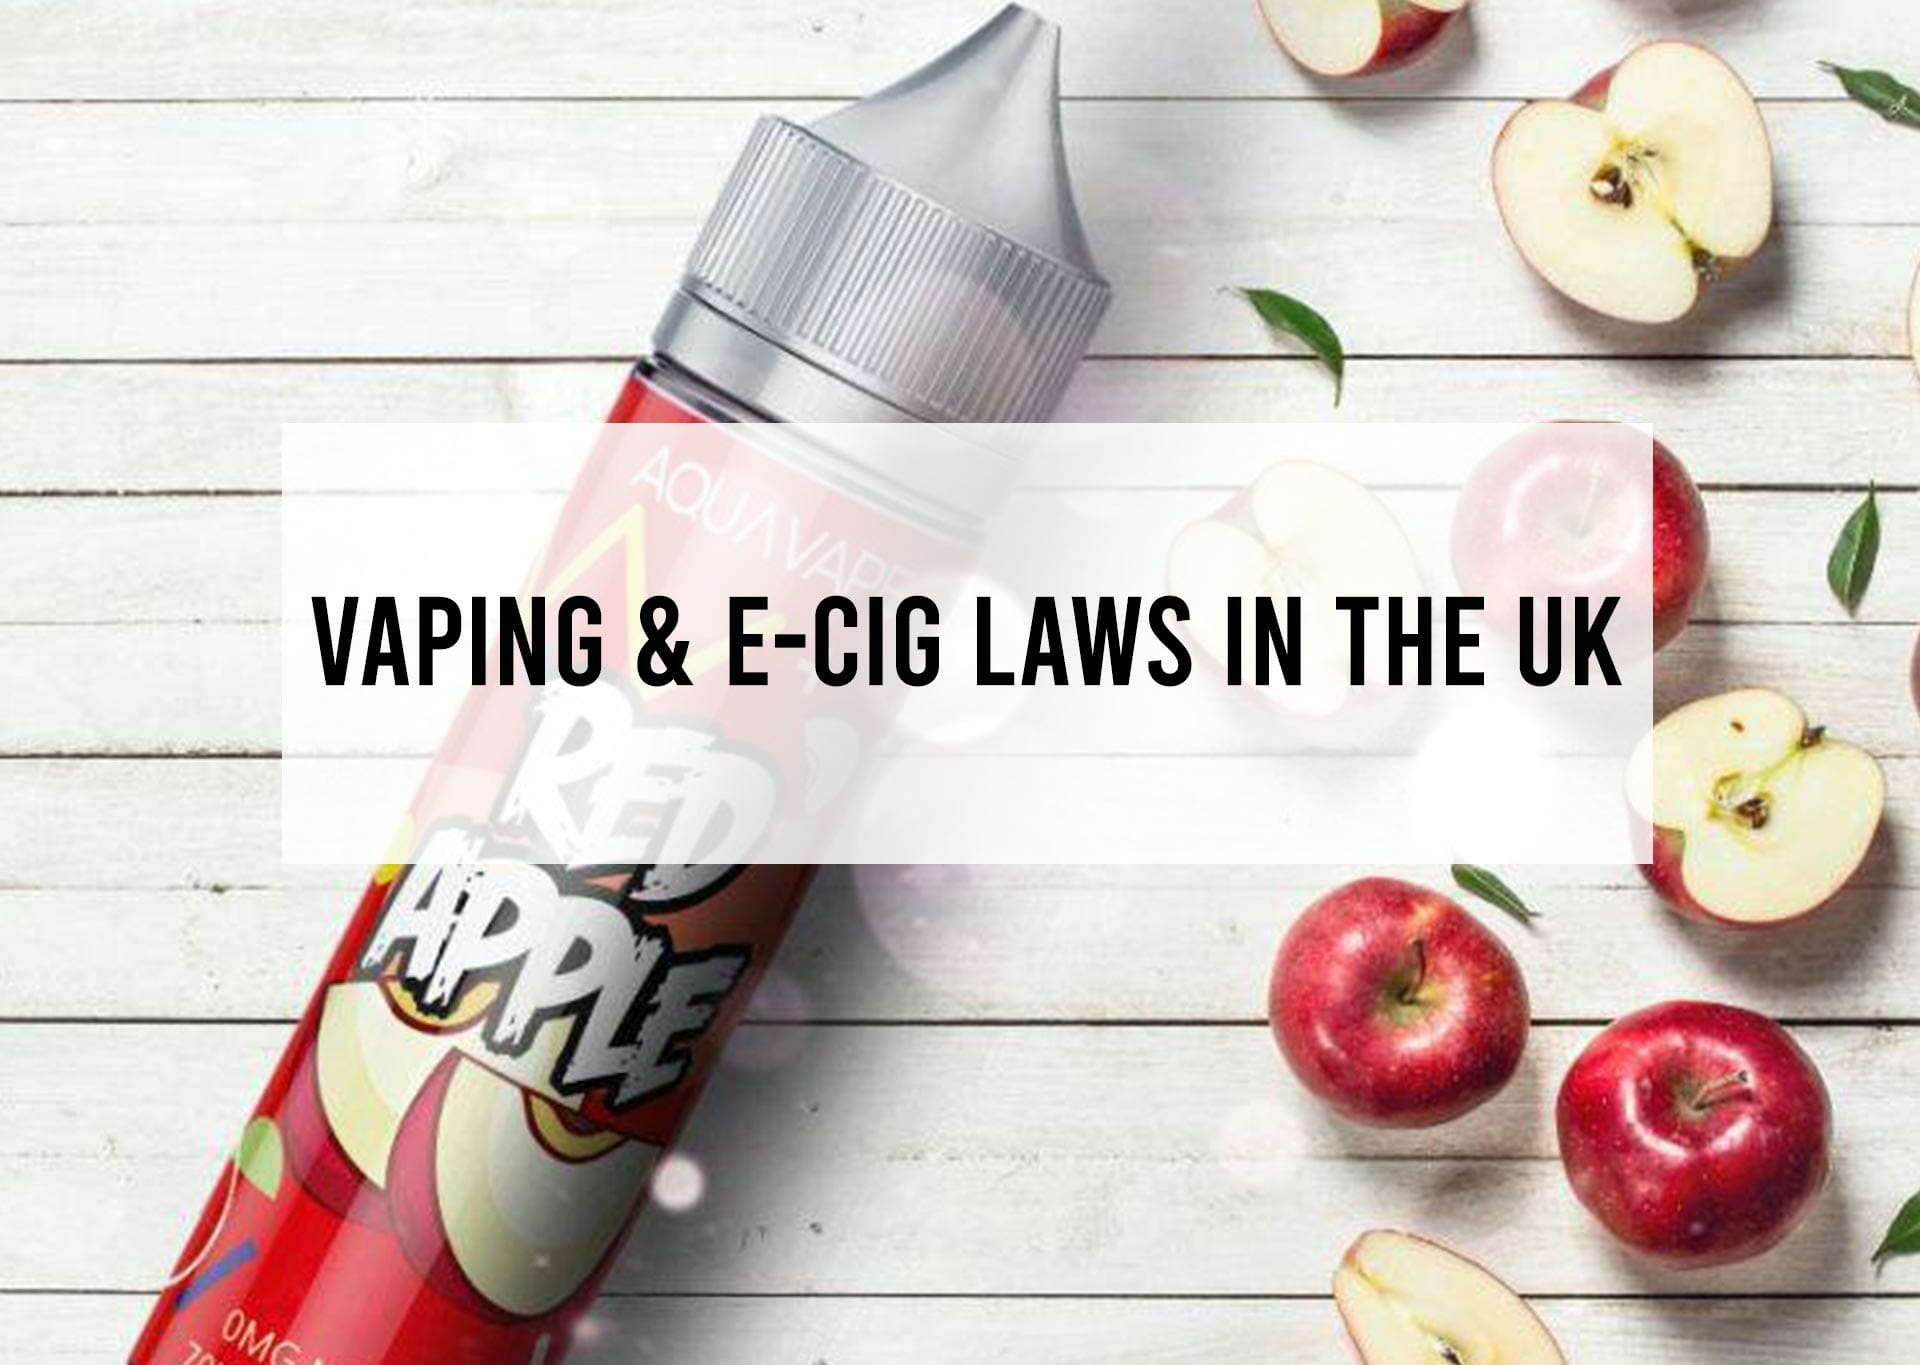 Vaping-&-E-Cig-Laws-in-the-UK